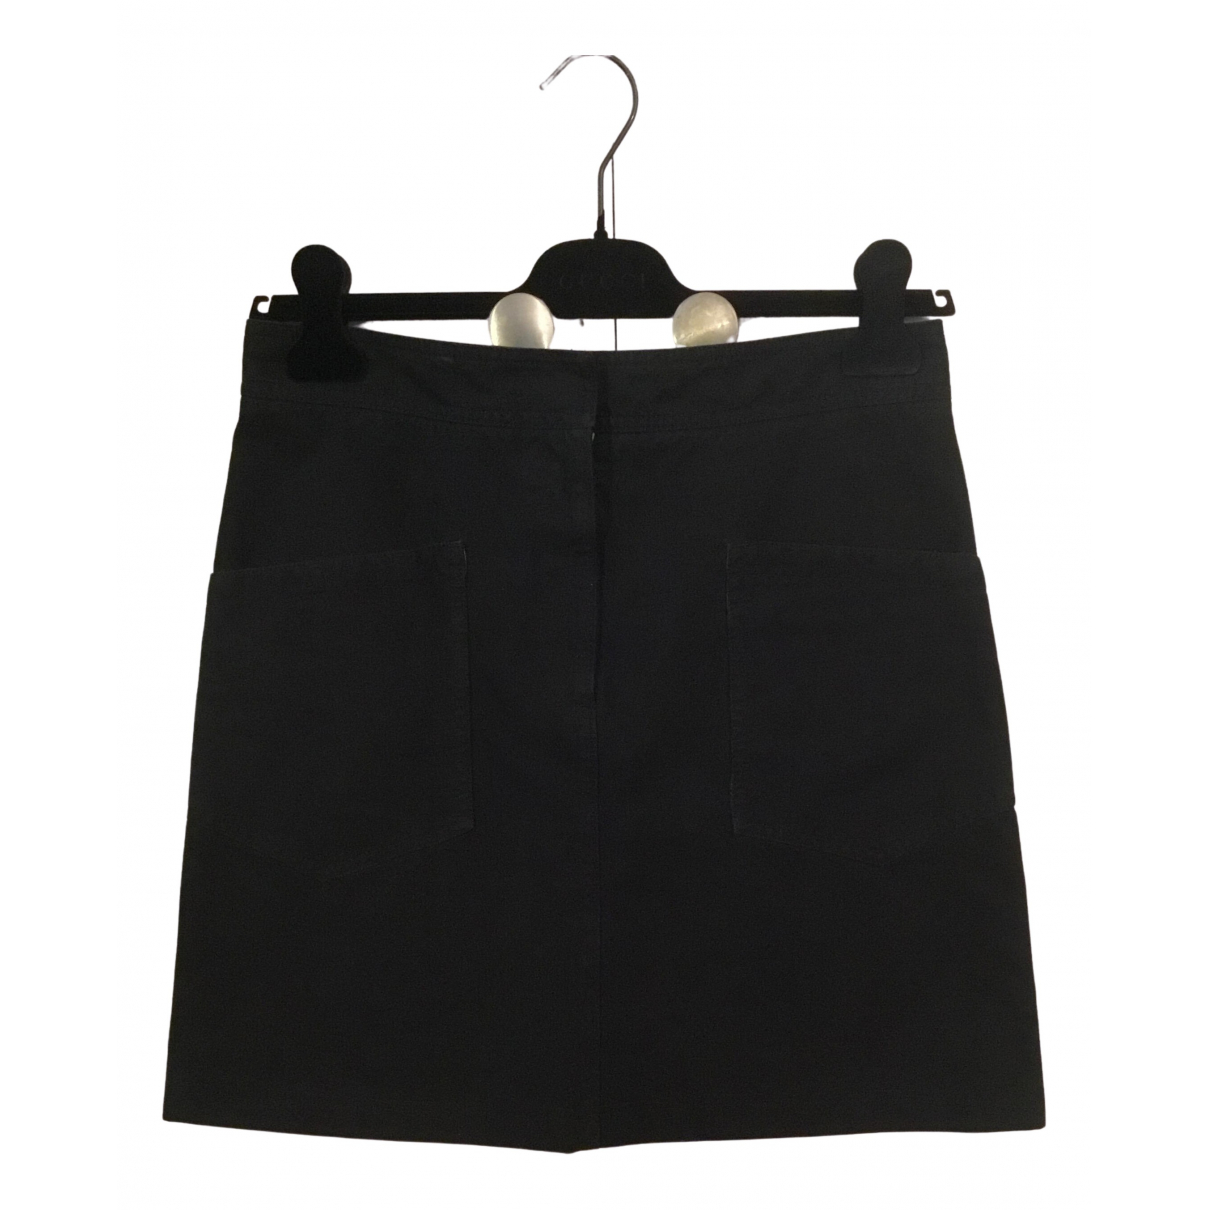 Mm6 \N Black Cotton skirt for Women 42 IT